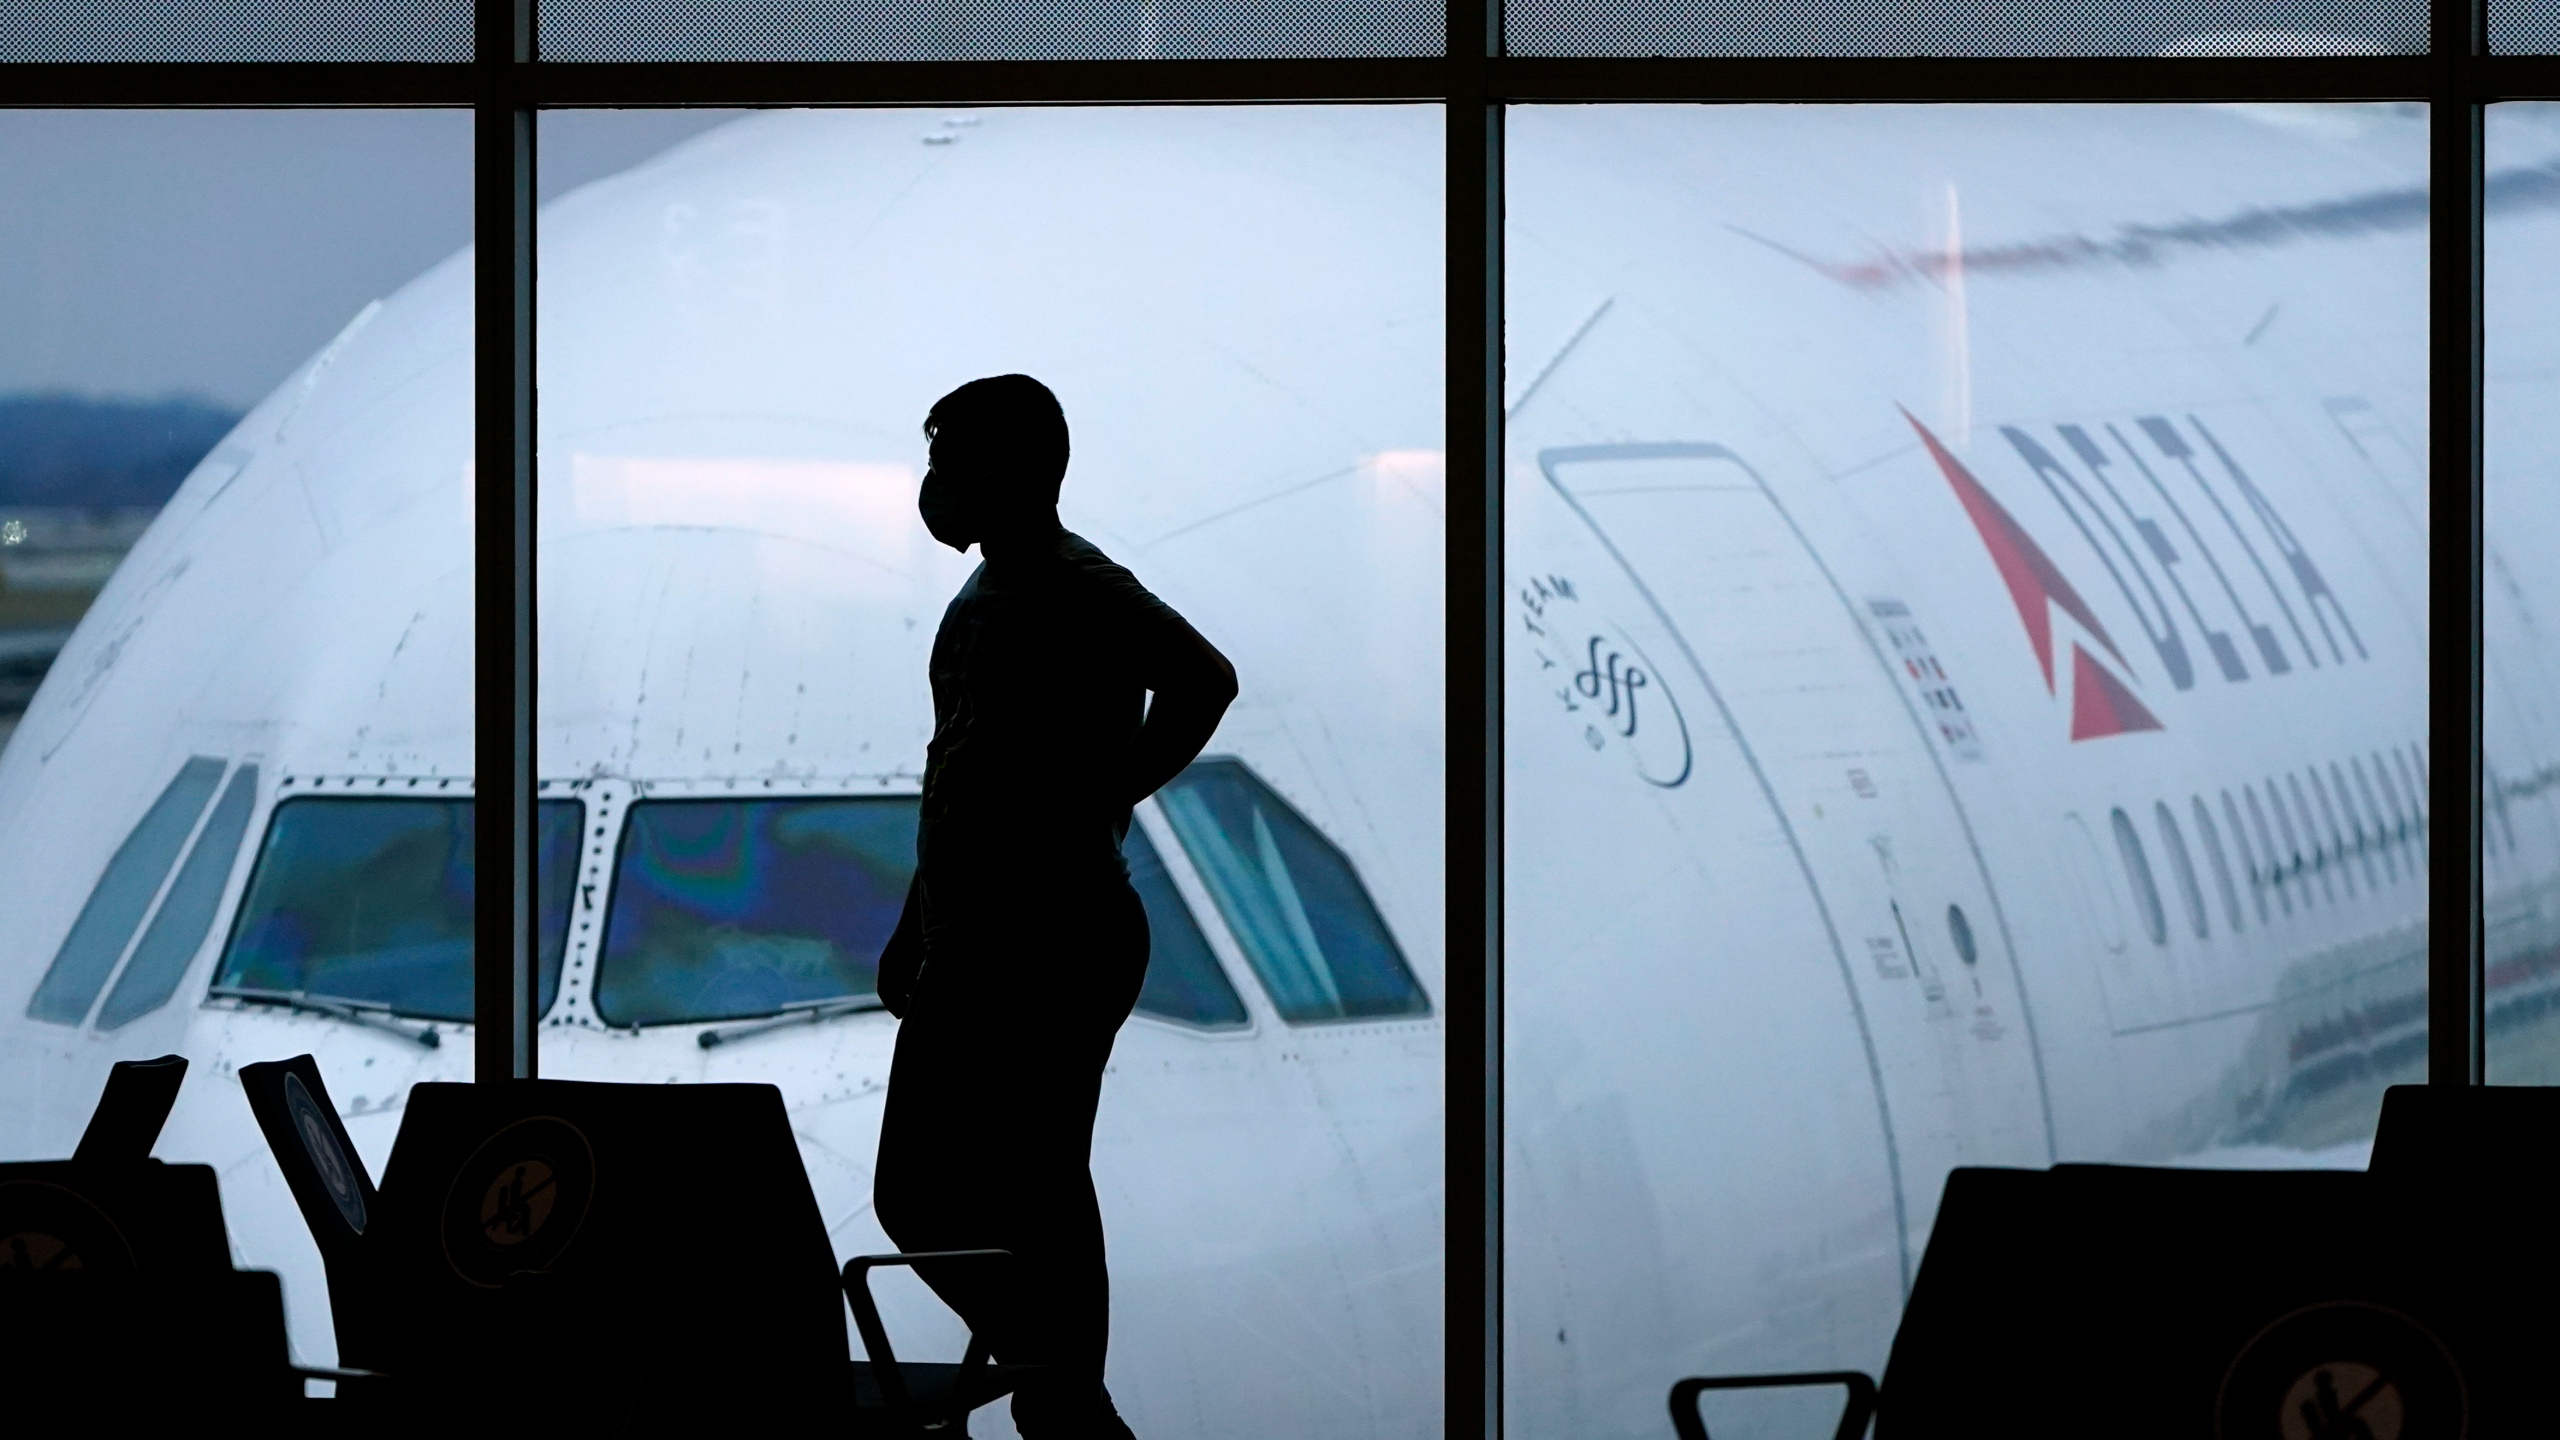 In this Feb. 18, 2021 file photo, a passenger wears a face mask to help prevent against the spread of the coronavirus as he waits for a Delta Airlines flight at Hartsfield-Jackson International Airport in Atlanta. (AP Photo/Charlie Riedel, File)